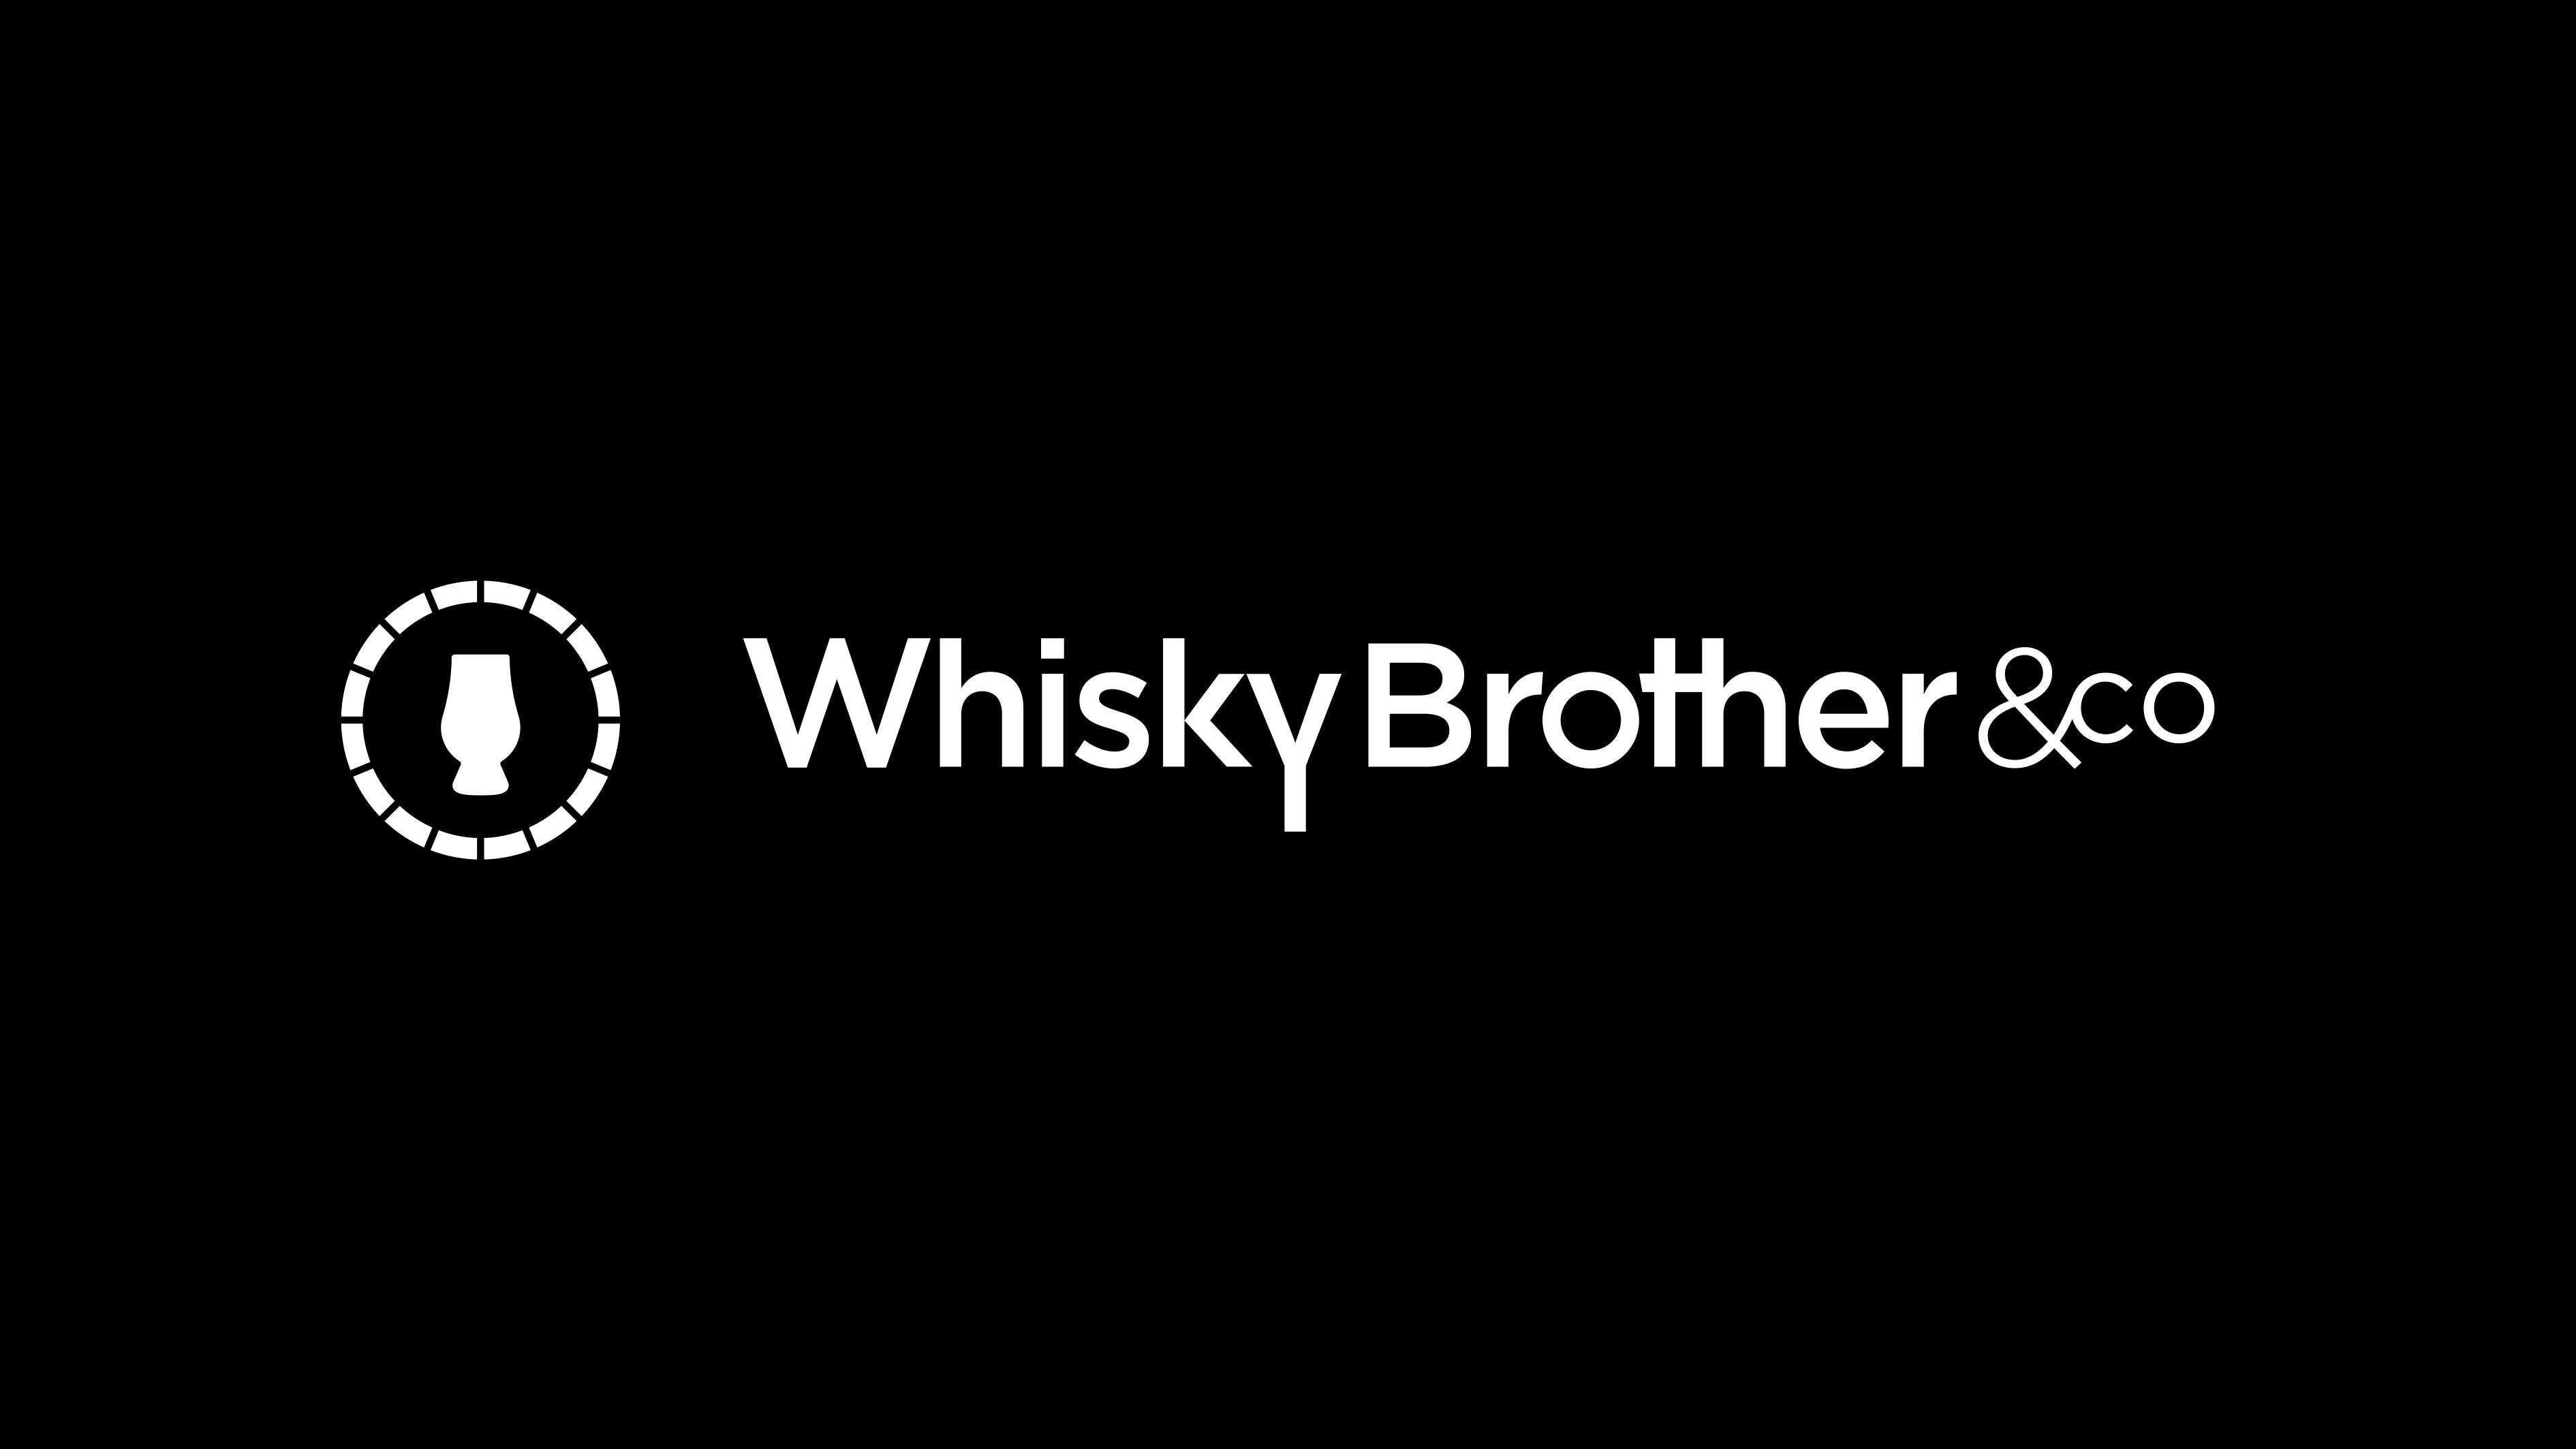 WhiskyBrother&Co New Logo